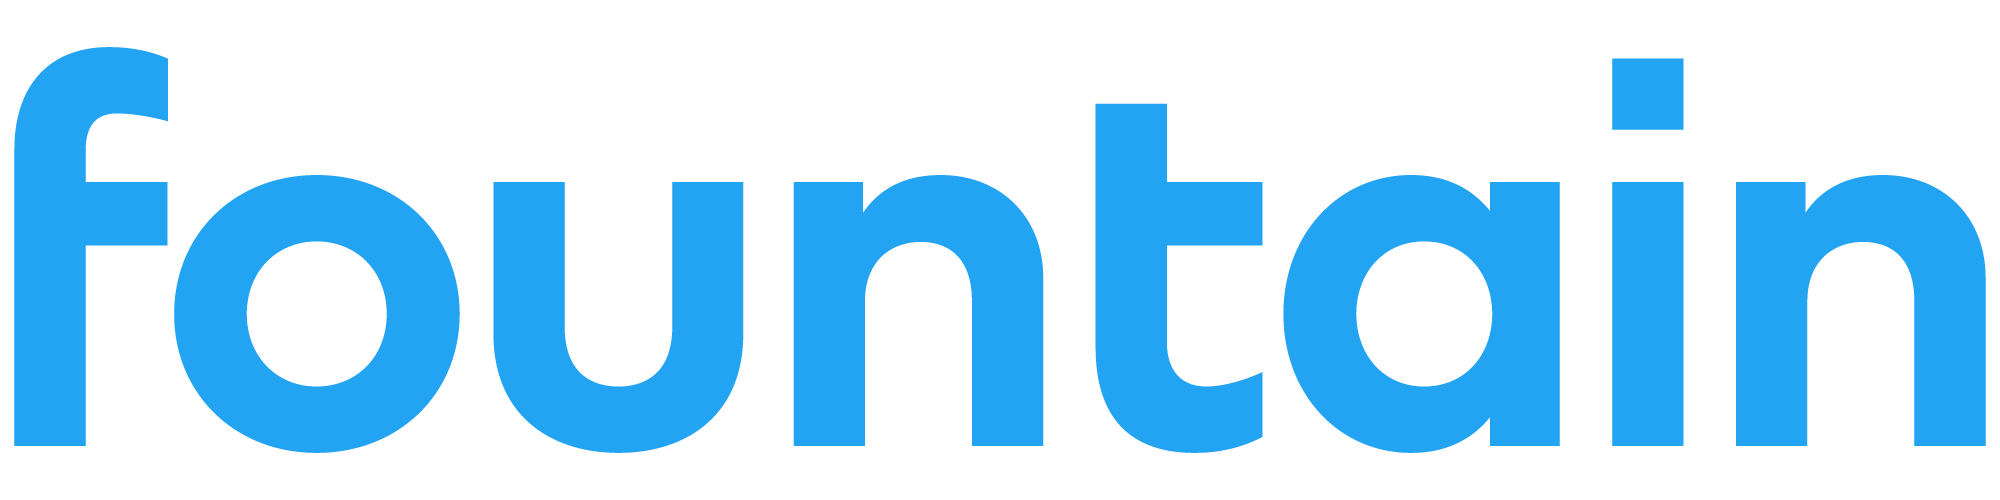 fountain_wordmark_blue.png